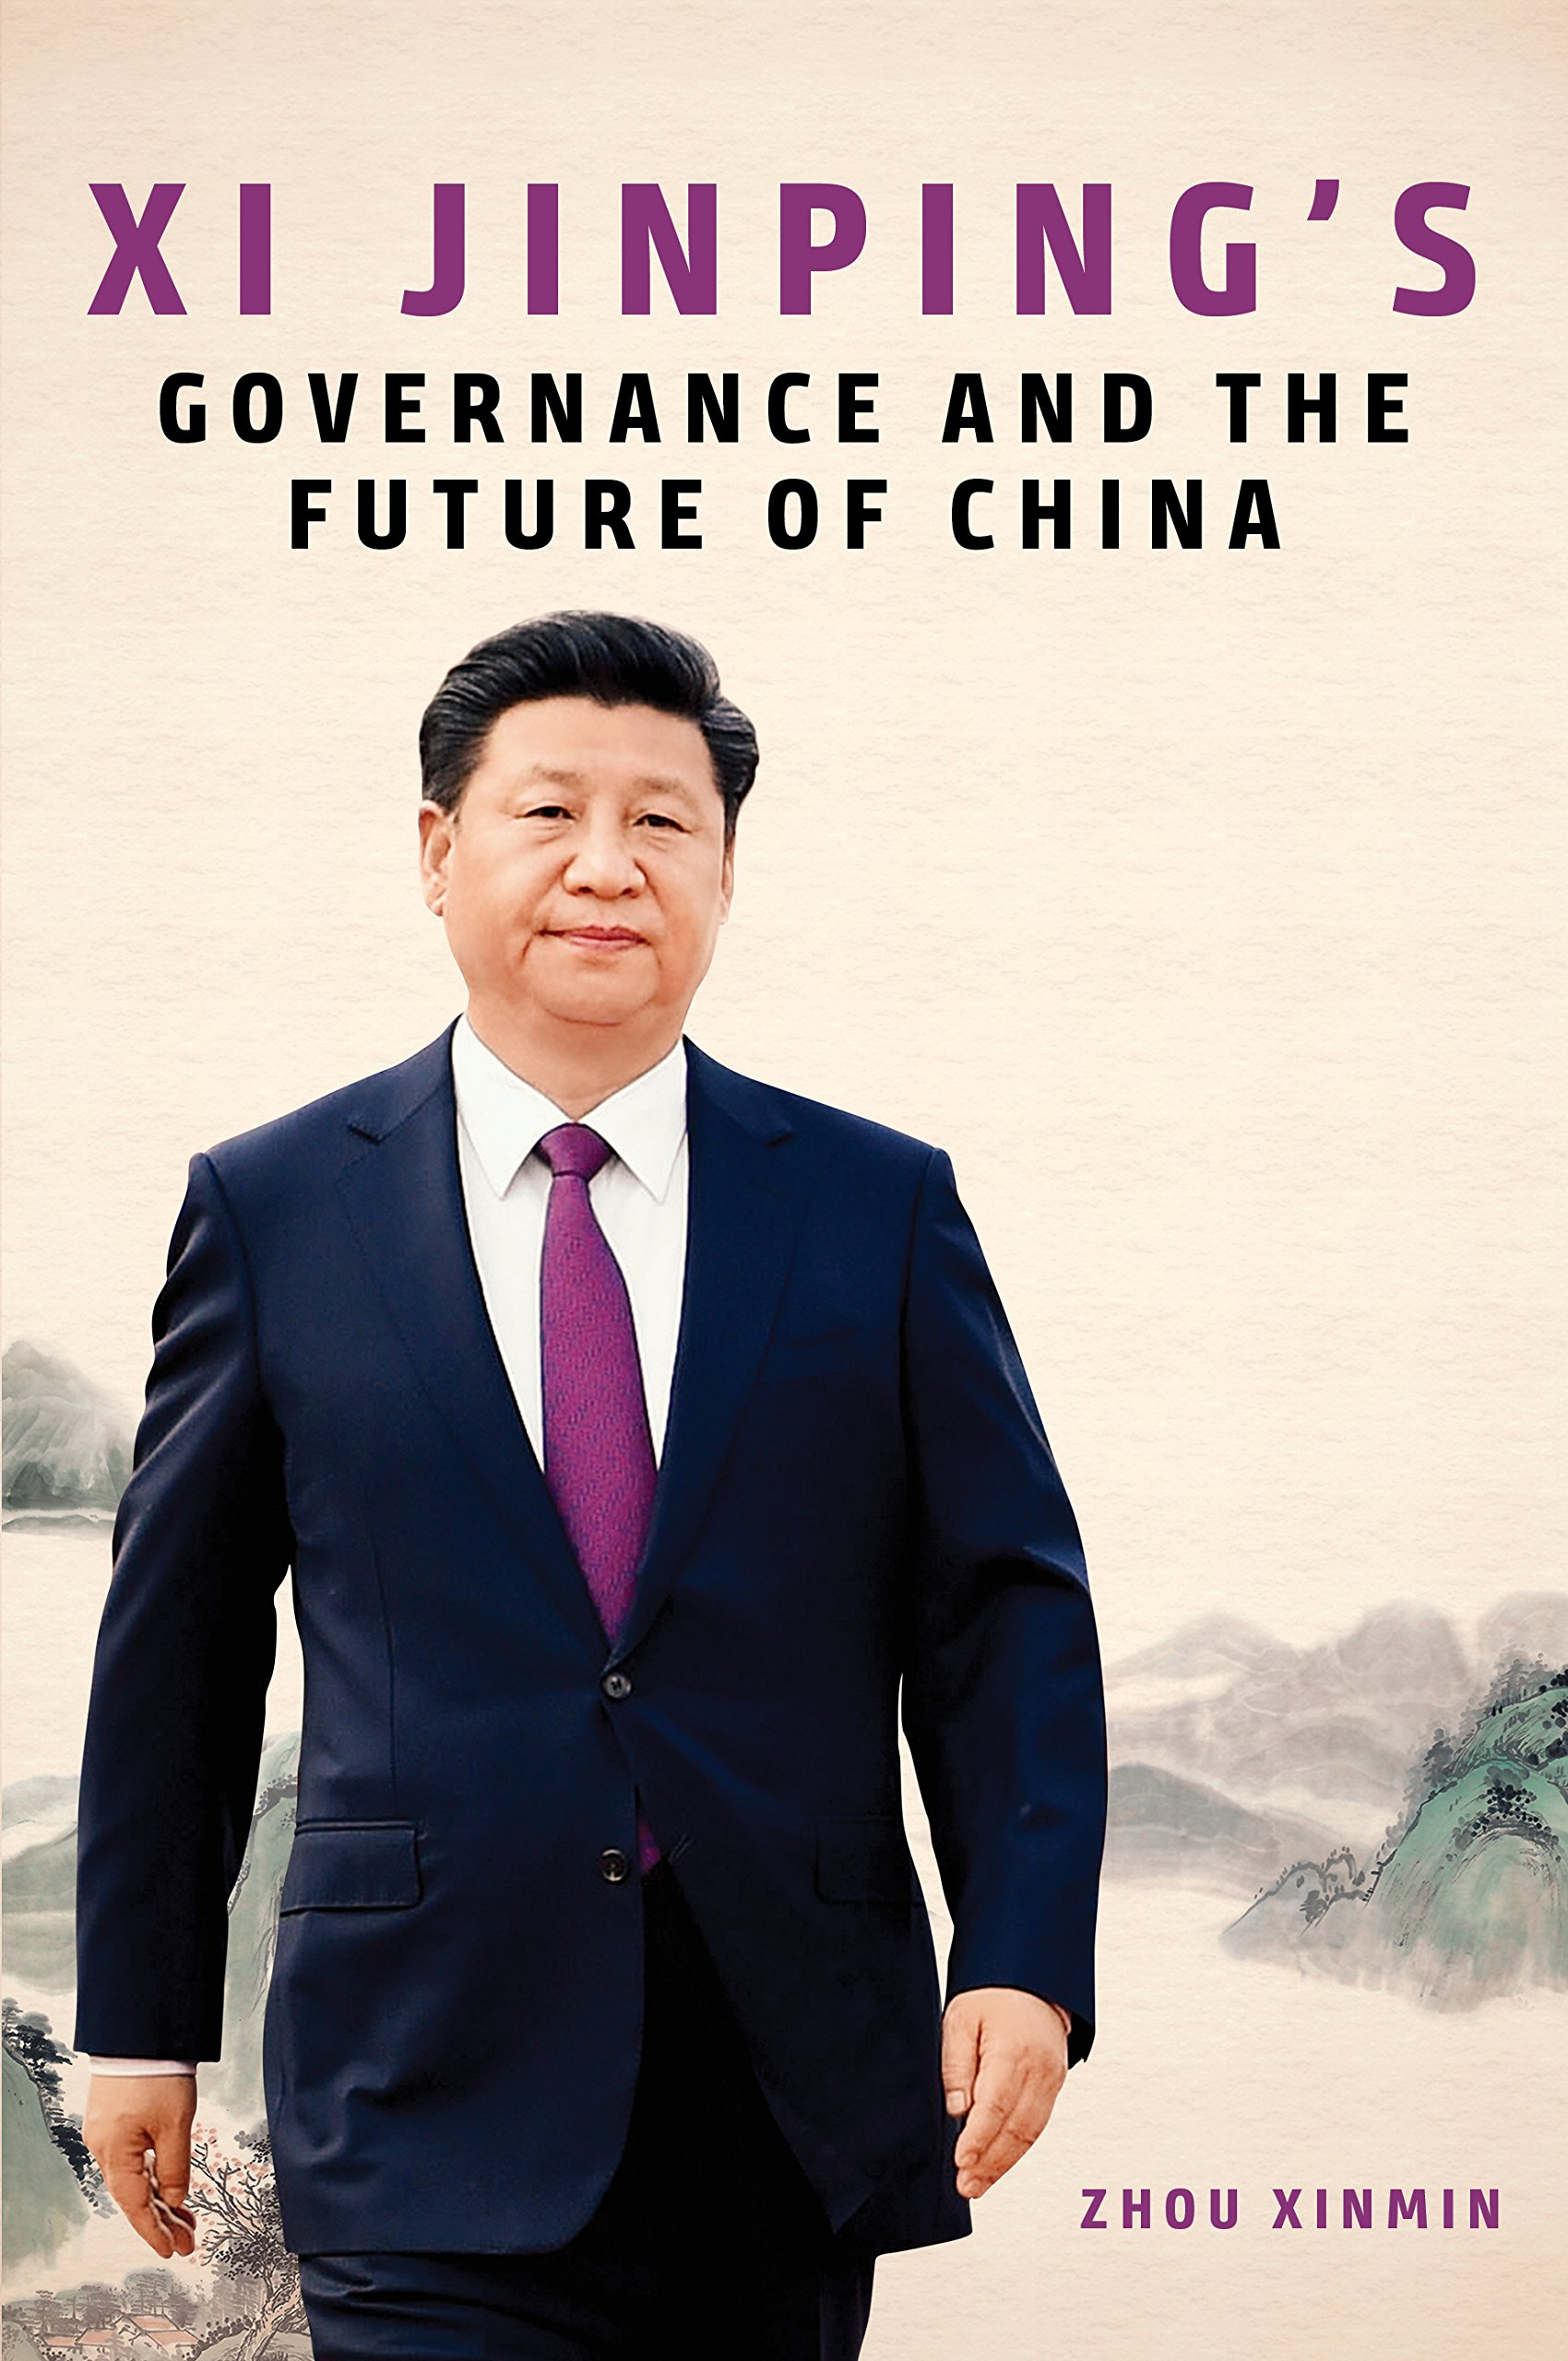 Xi Jinpings Governance and the Future of China